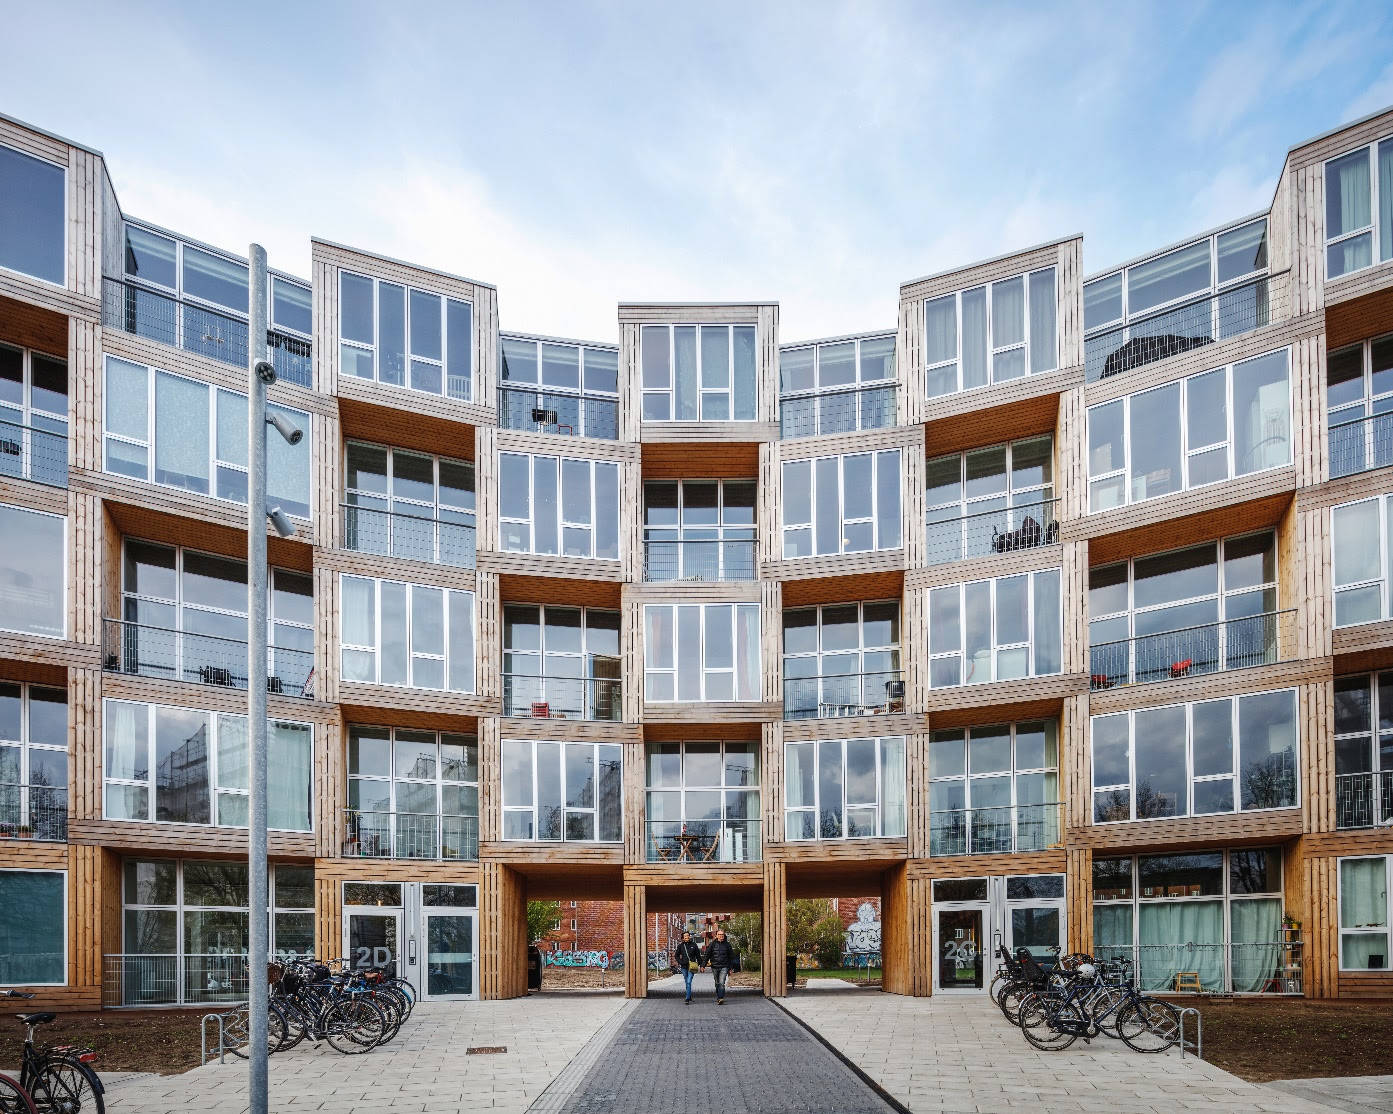 Front of curving building with bikes